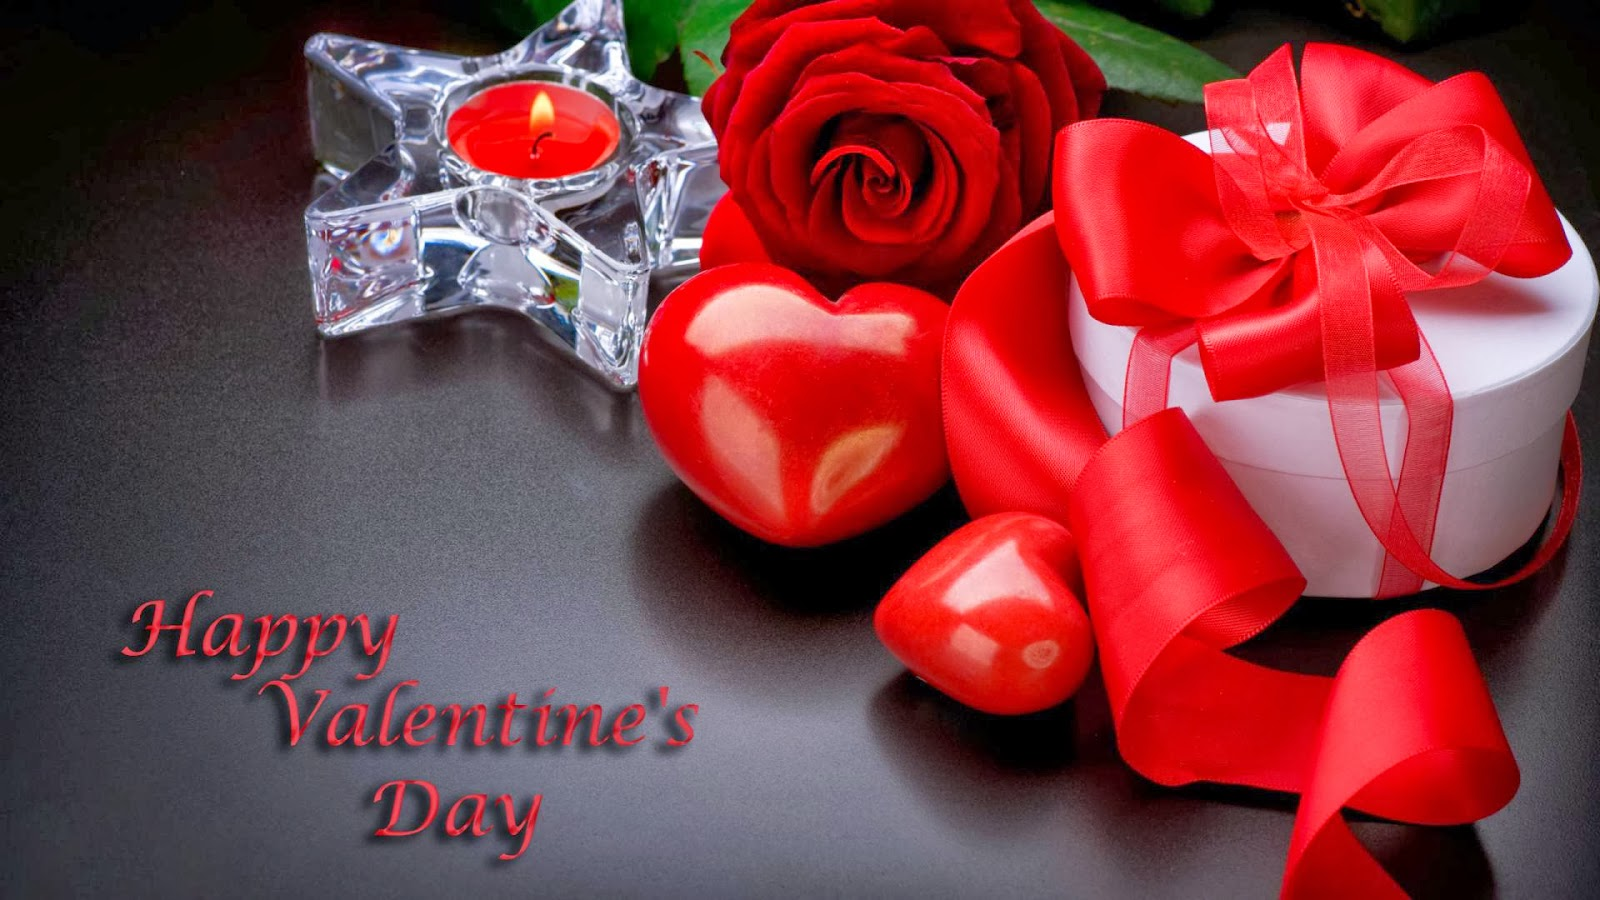 Happy Valentines Day Greetigns With Best Quotes Wishes Make Beloved Smile